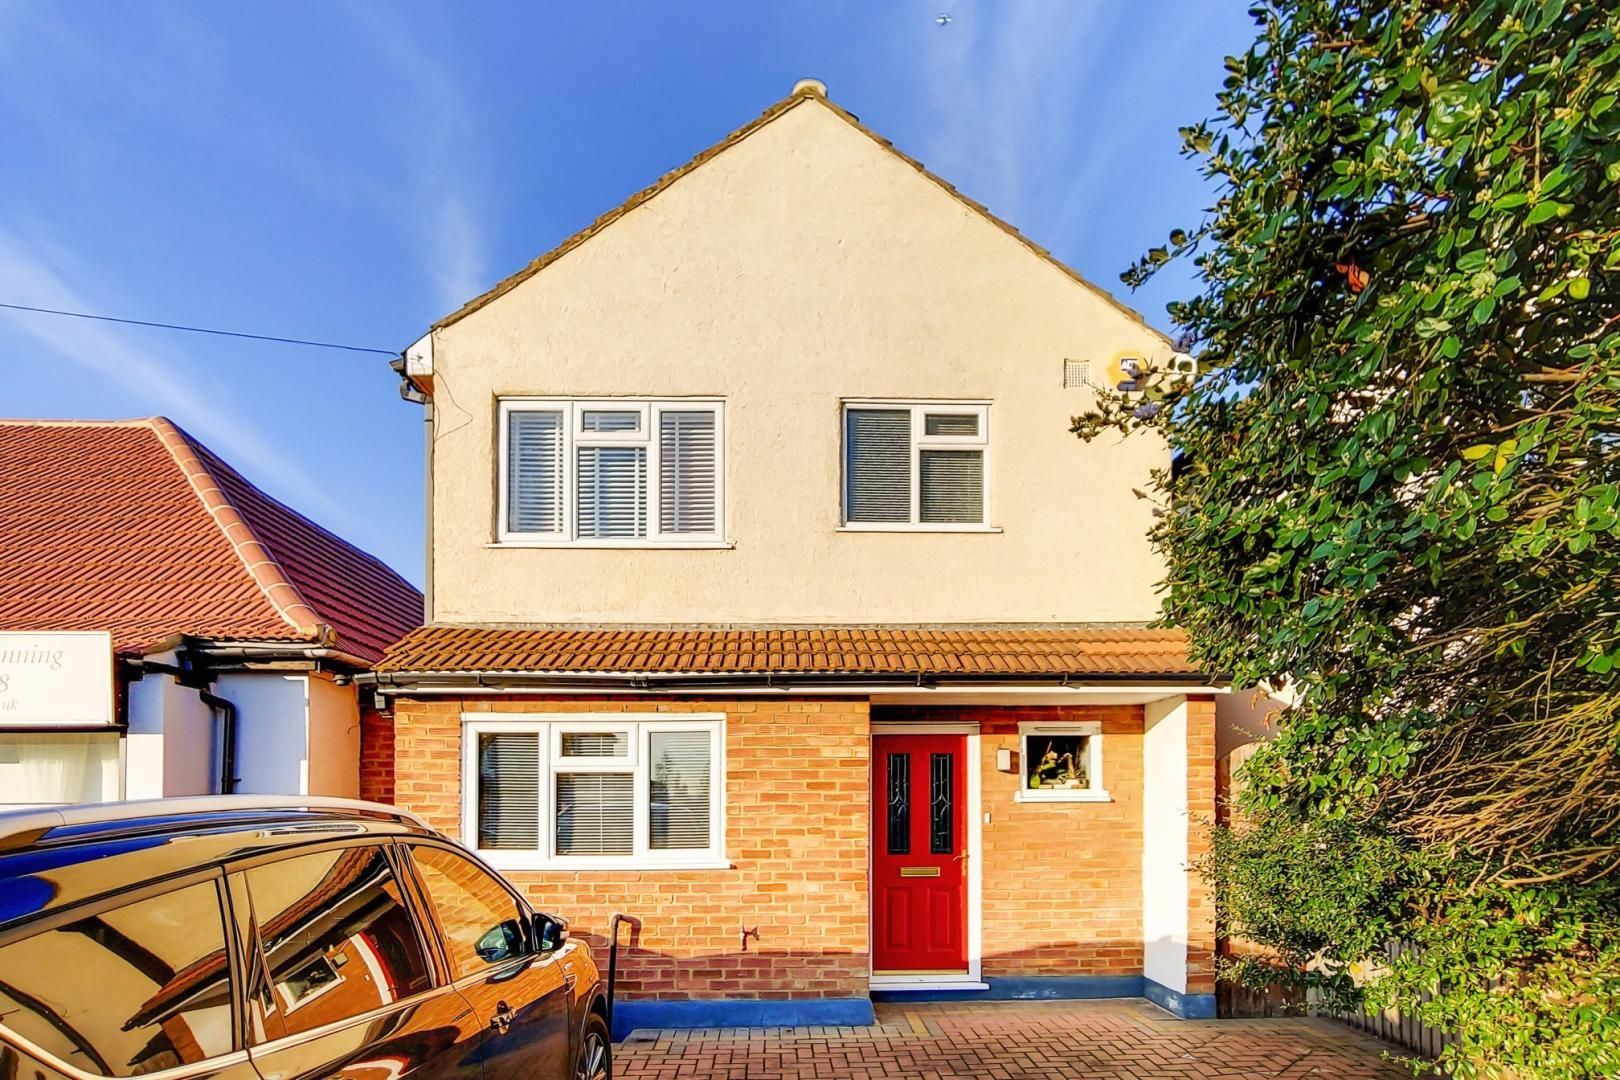 3 bed house for sale in Upminster Road North - Property Image 1